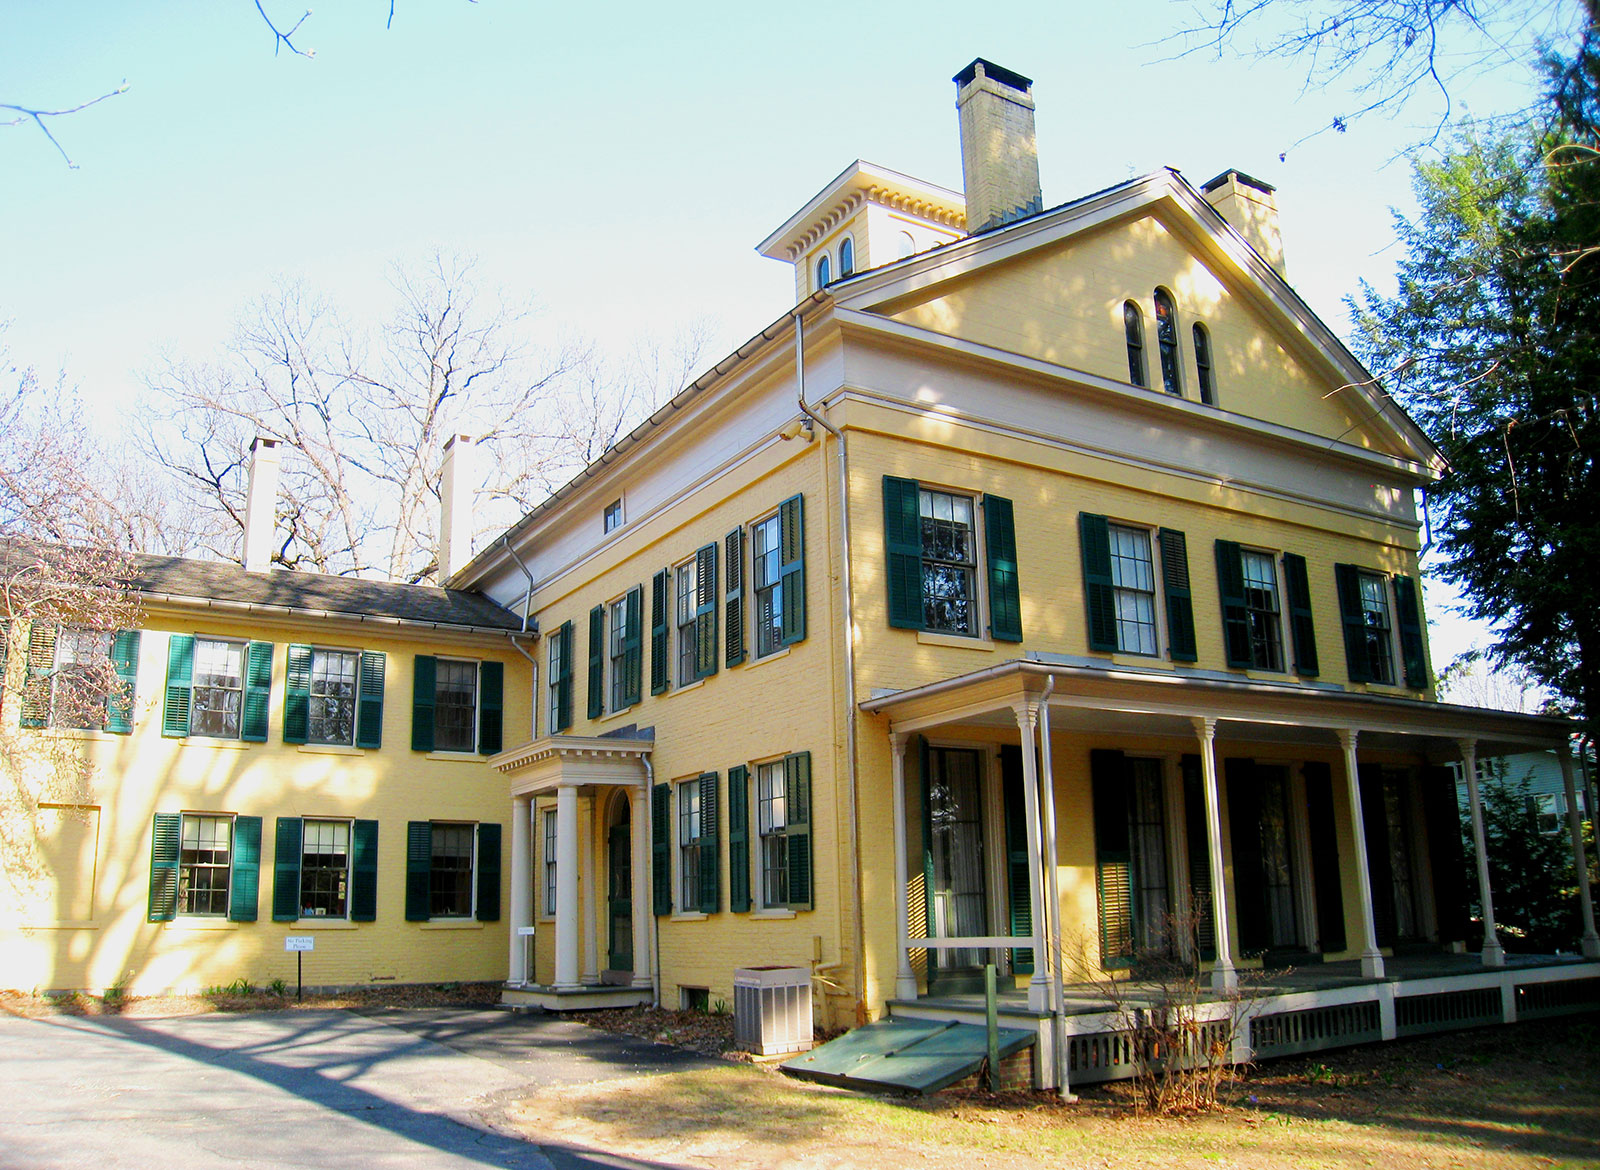 Emily Dickinson Museum - the writer's home